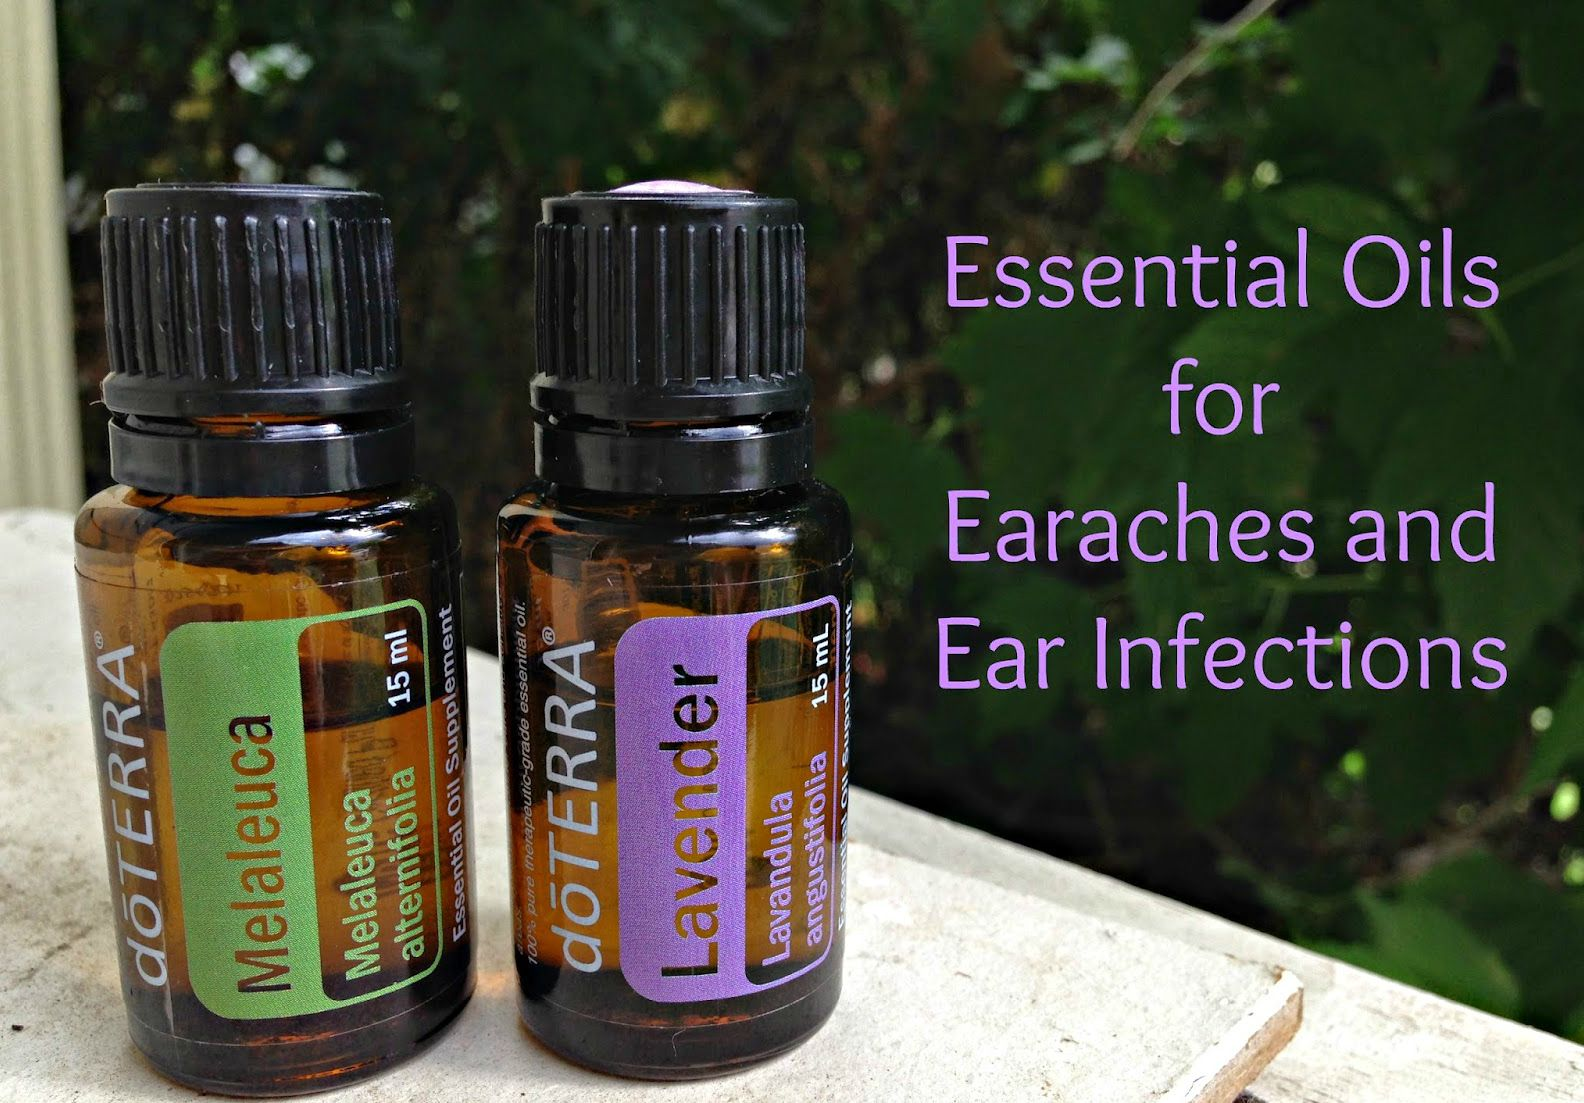 Hippie Living 4 Life Essential Oils For Earache And Ear Infections